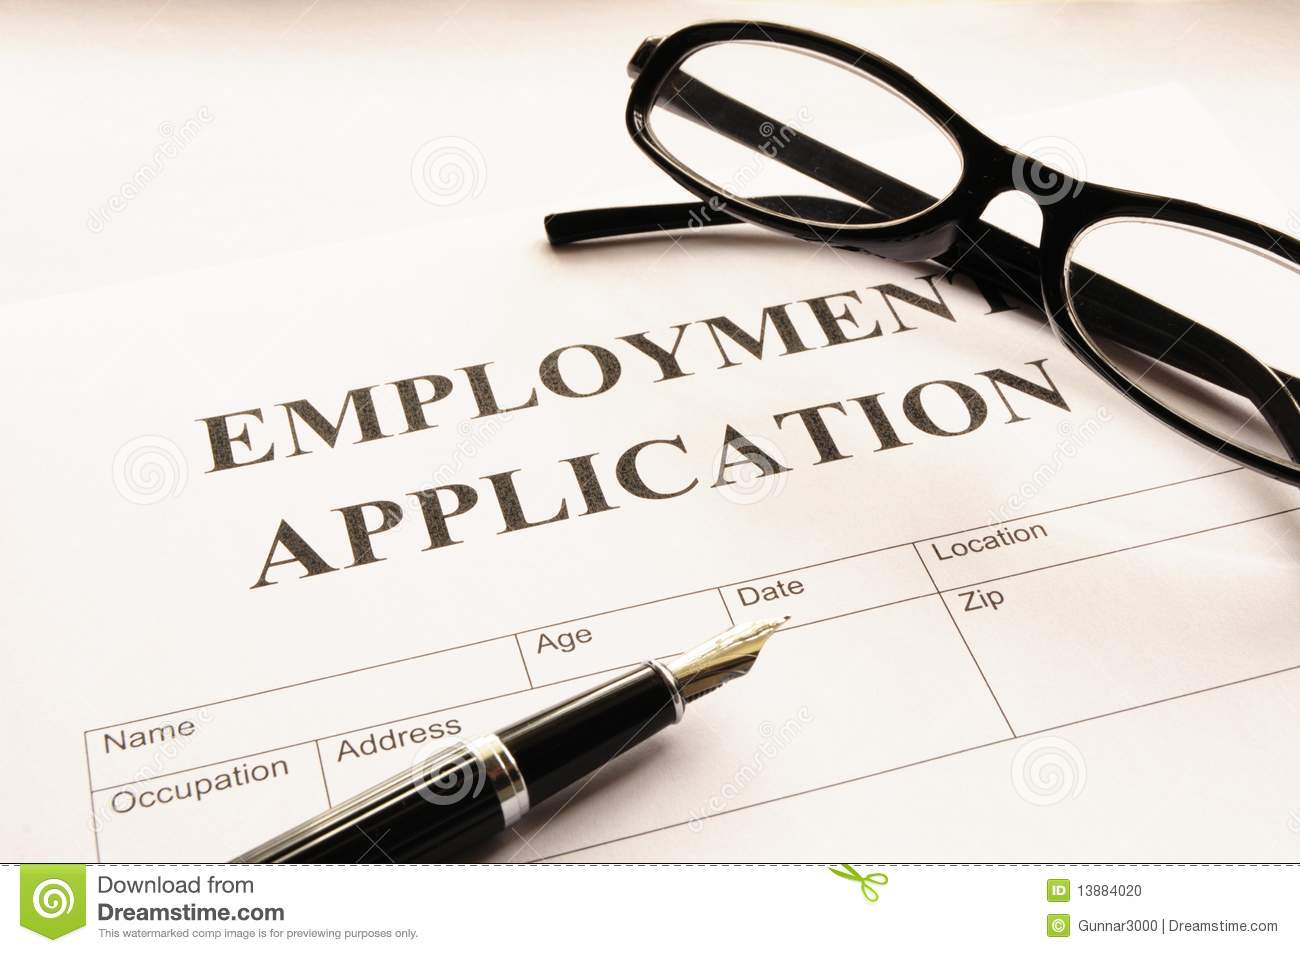 Employment application stock photo. Image of business - 13884020